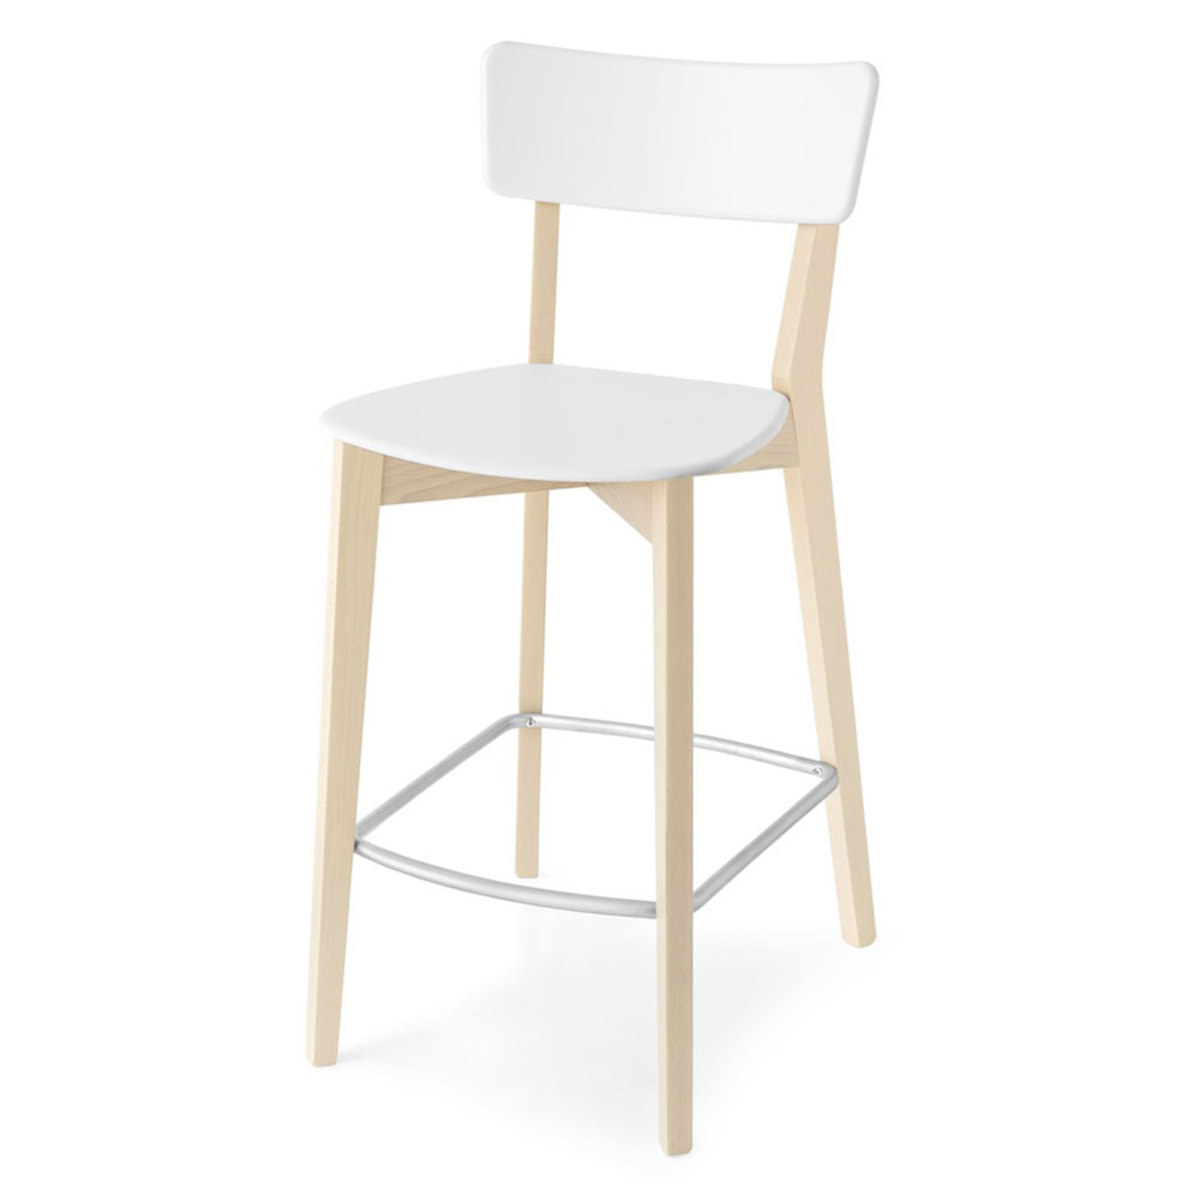 Tabourets Bar Gifi Beautiful Tabouret Bar Gifi With Tabouret Bar Gifi